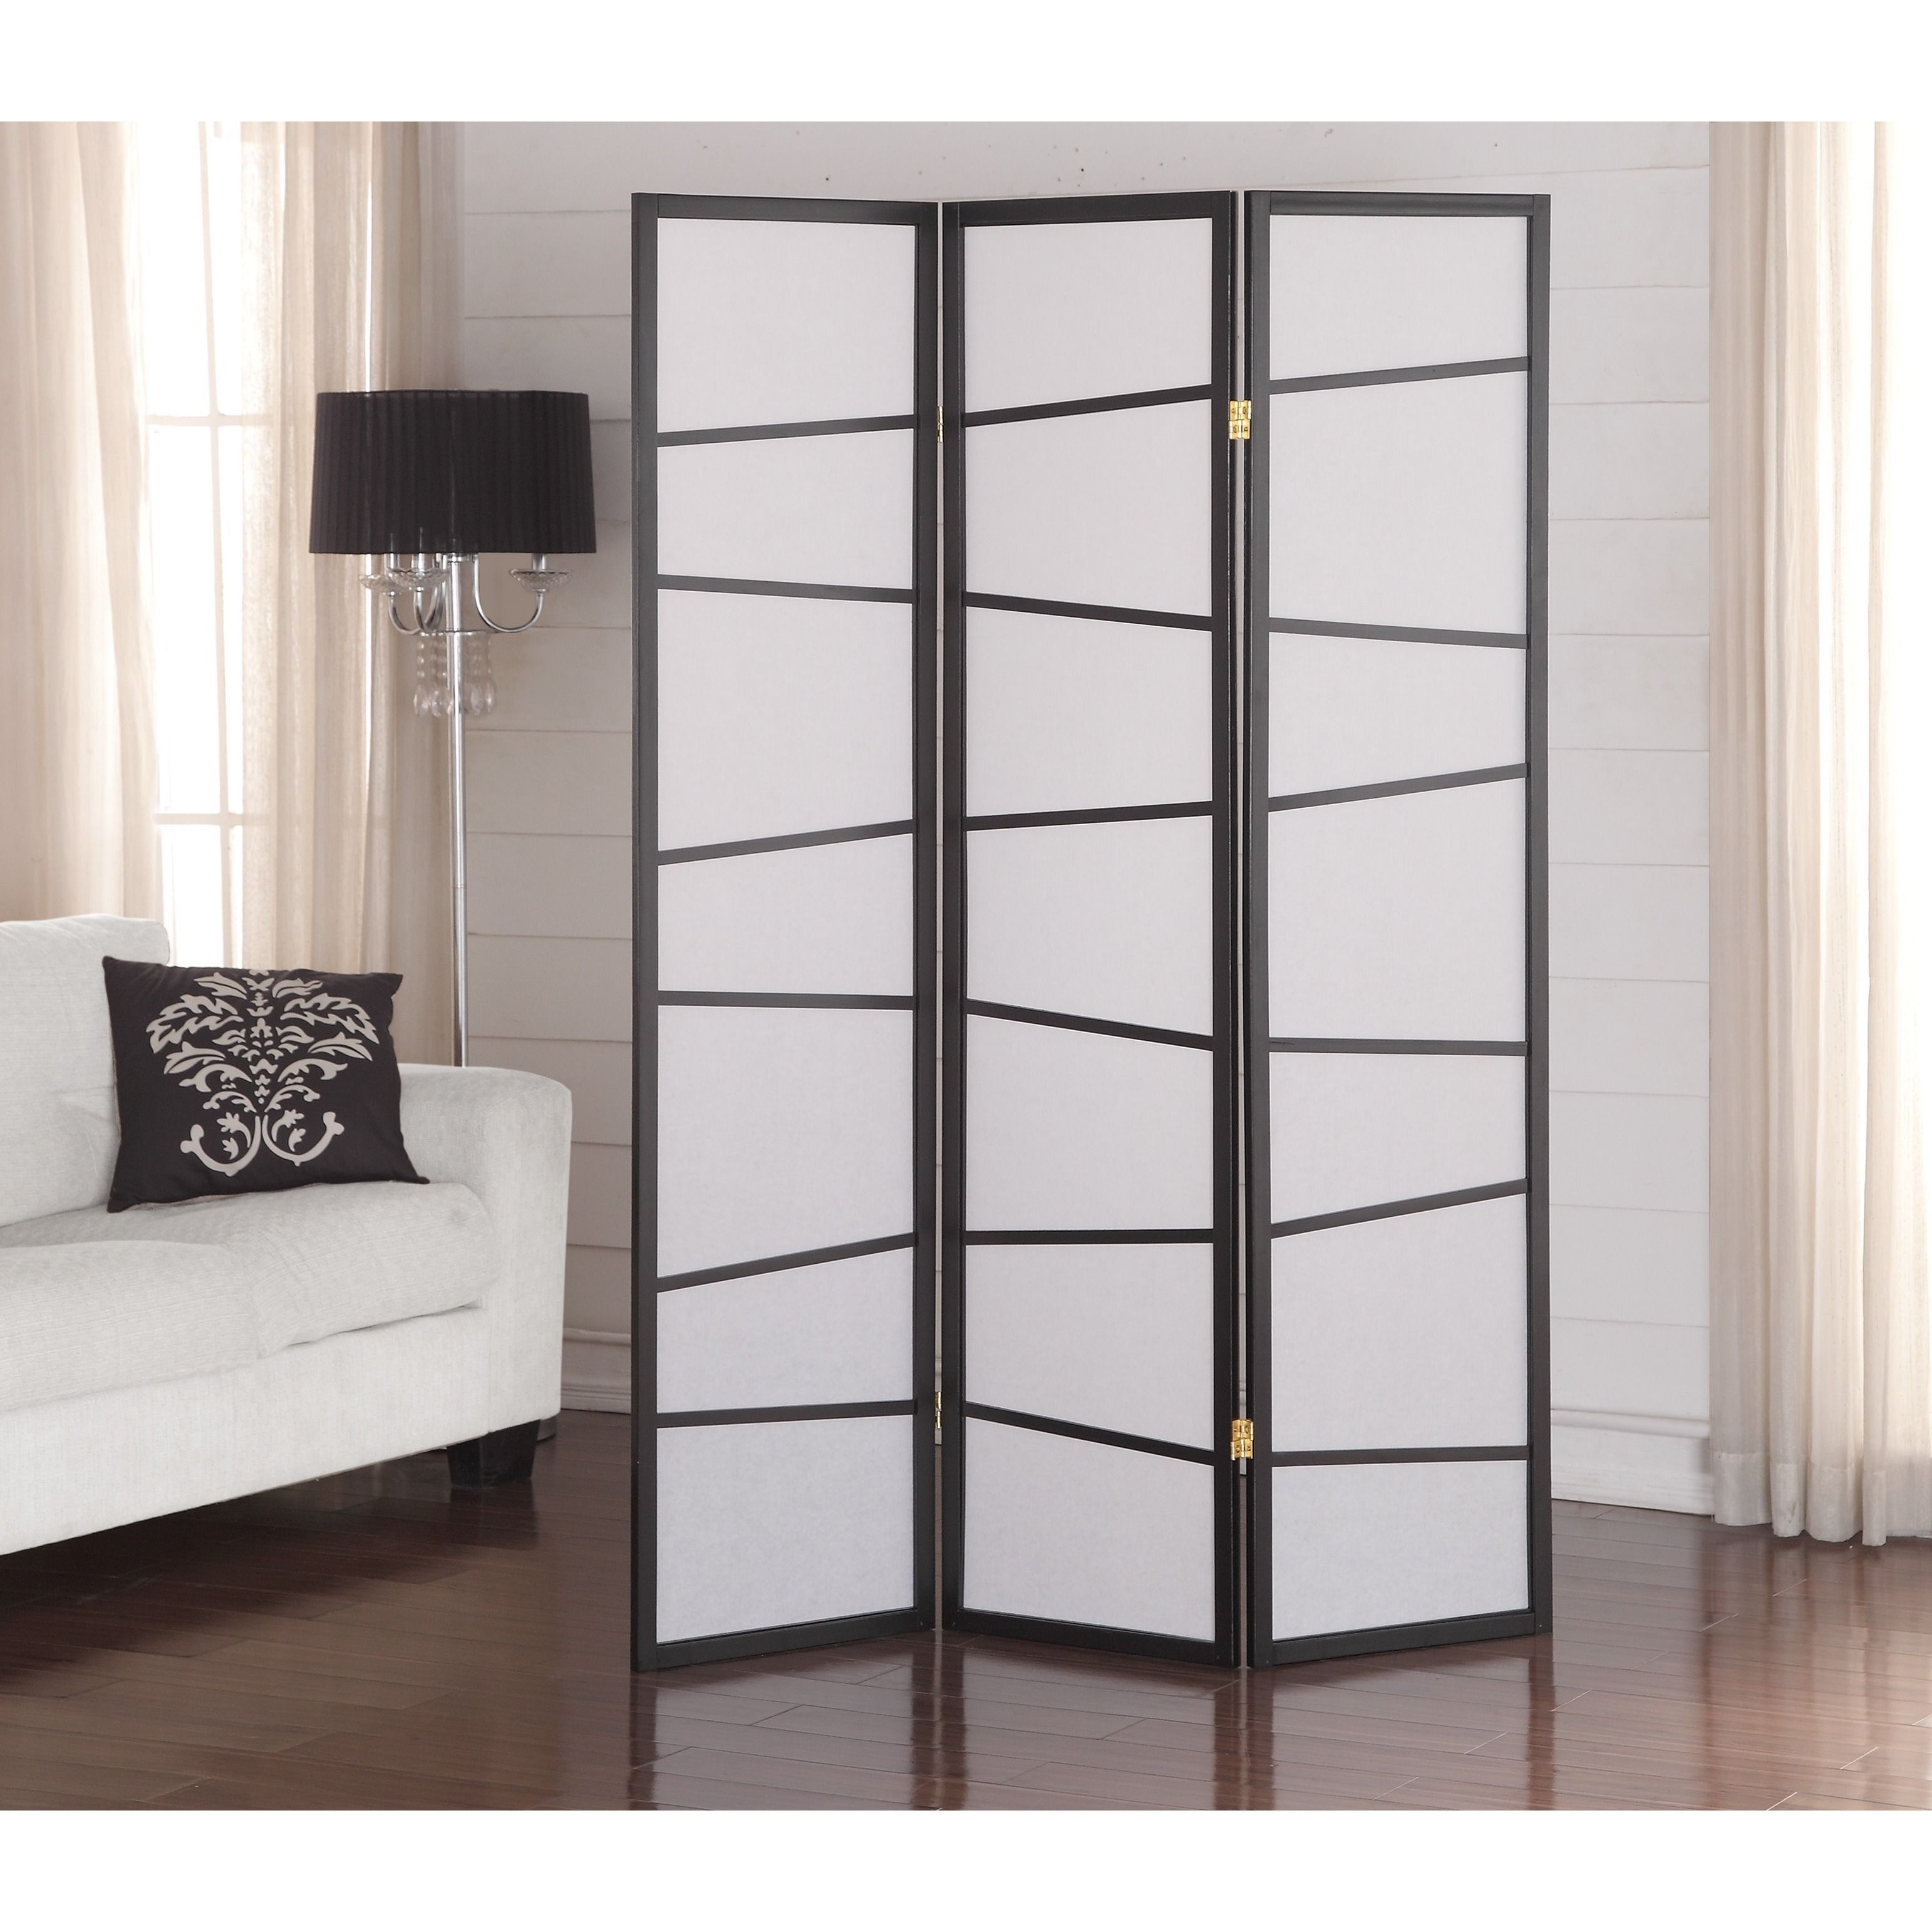 Black 3-Panel Screen Room Divider (Black and White) | Biombos